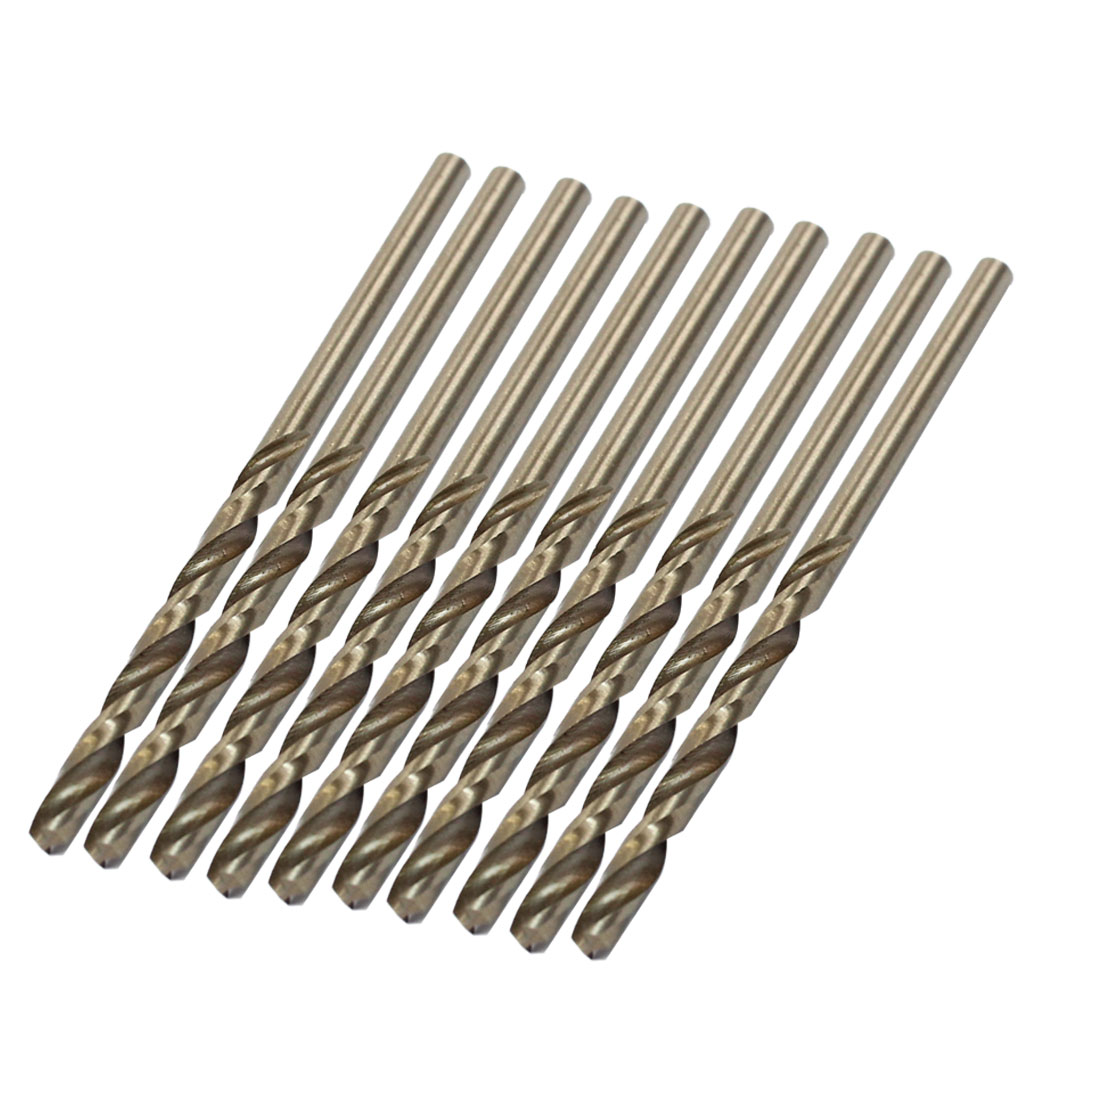 10 Pcs HSS-CO 2.9mm x 35mm Tip Straight Shank Electric Twist Drilling Bit